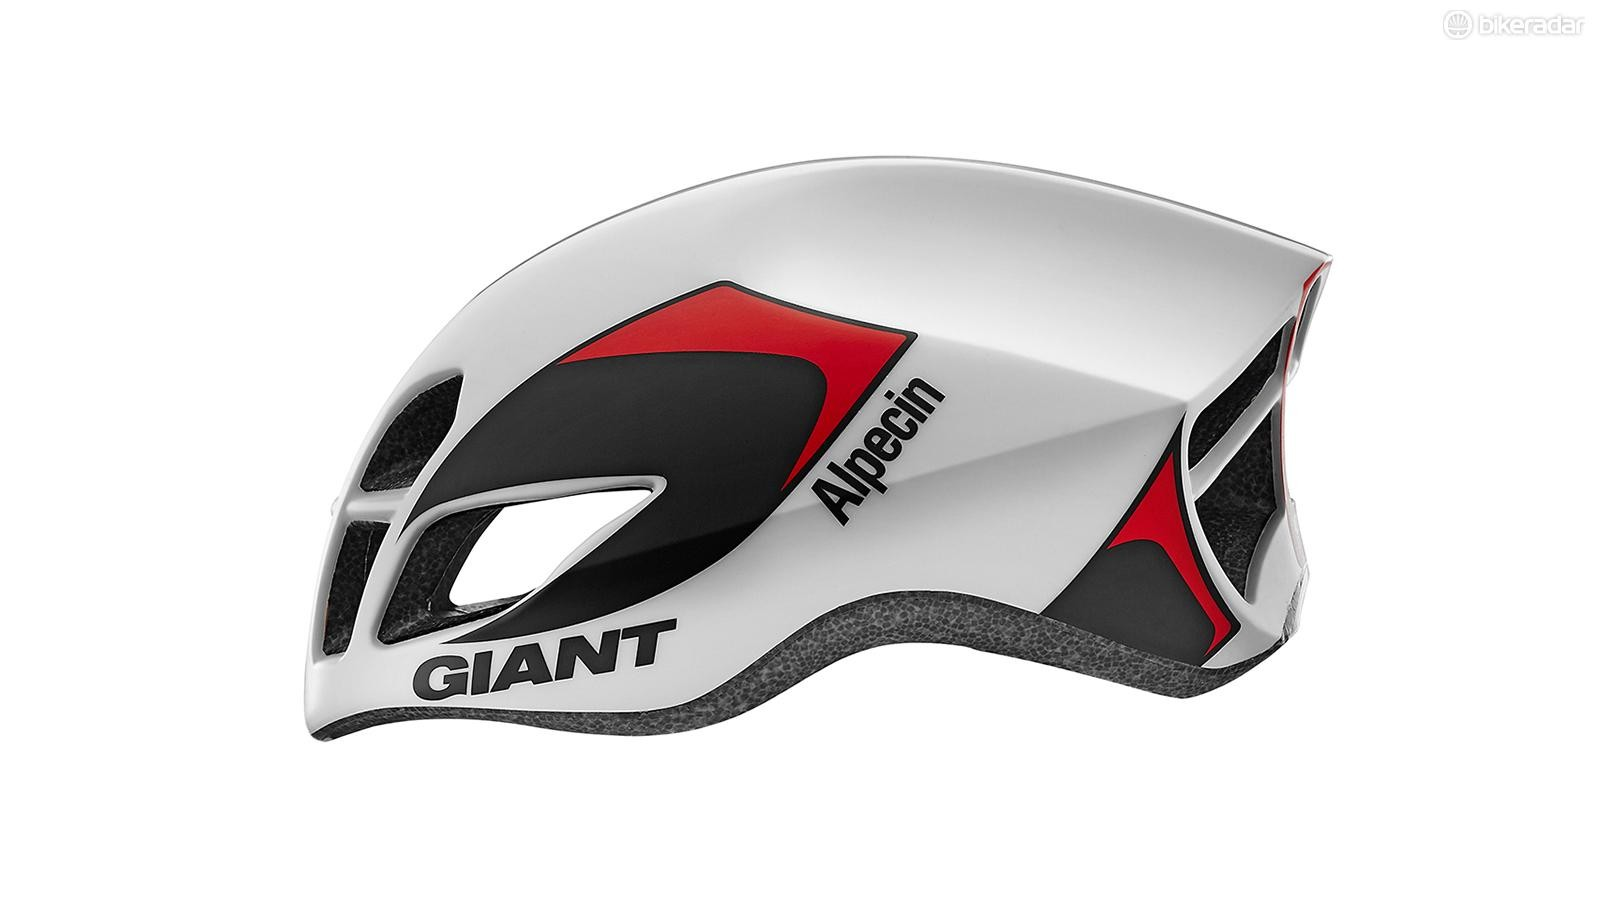 As is the current trend, the Giant Pursuit seeks to offer both good aerodynamics and good ventilation